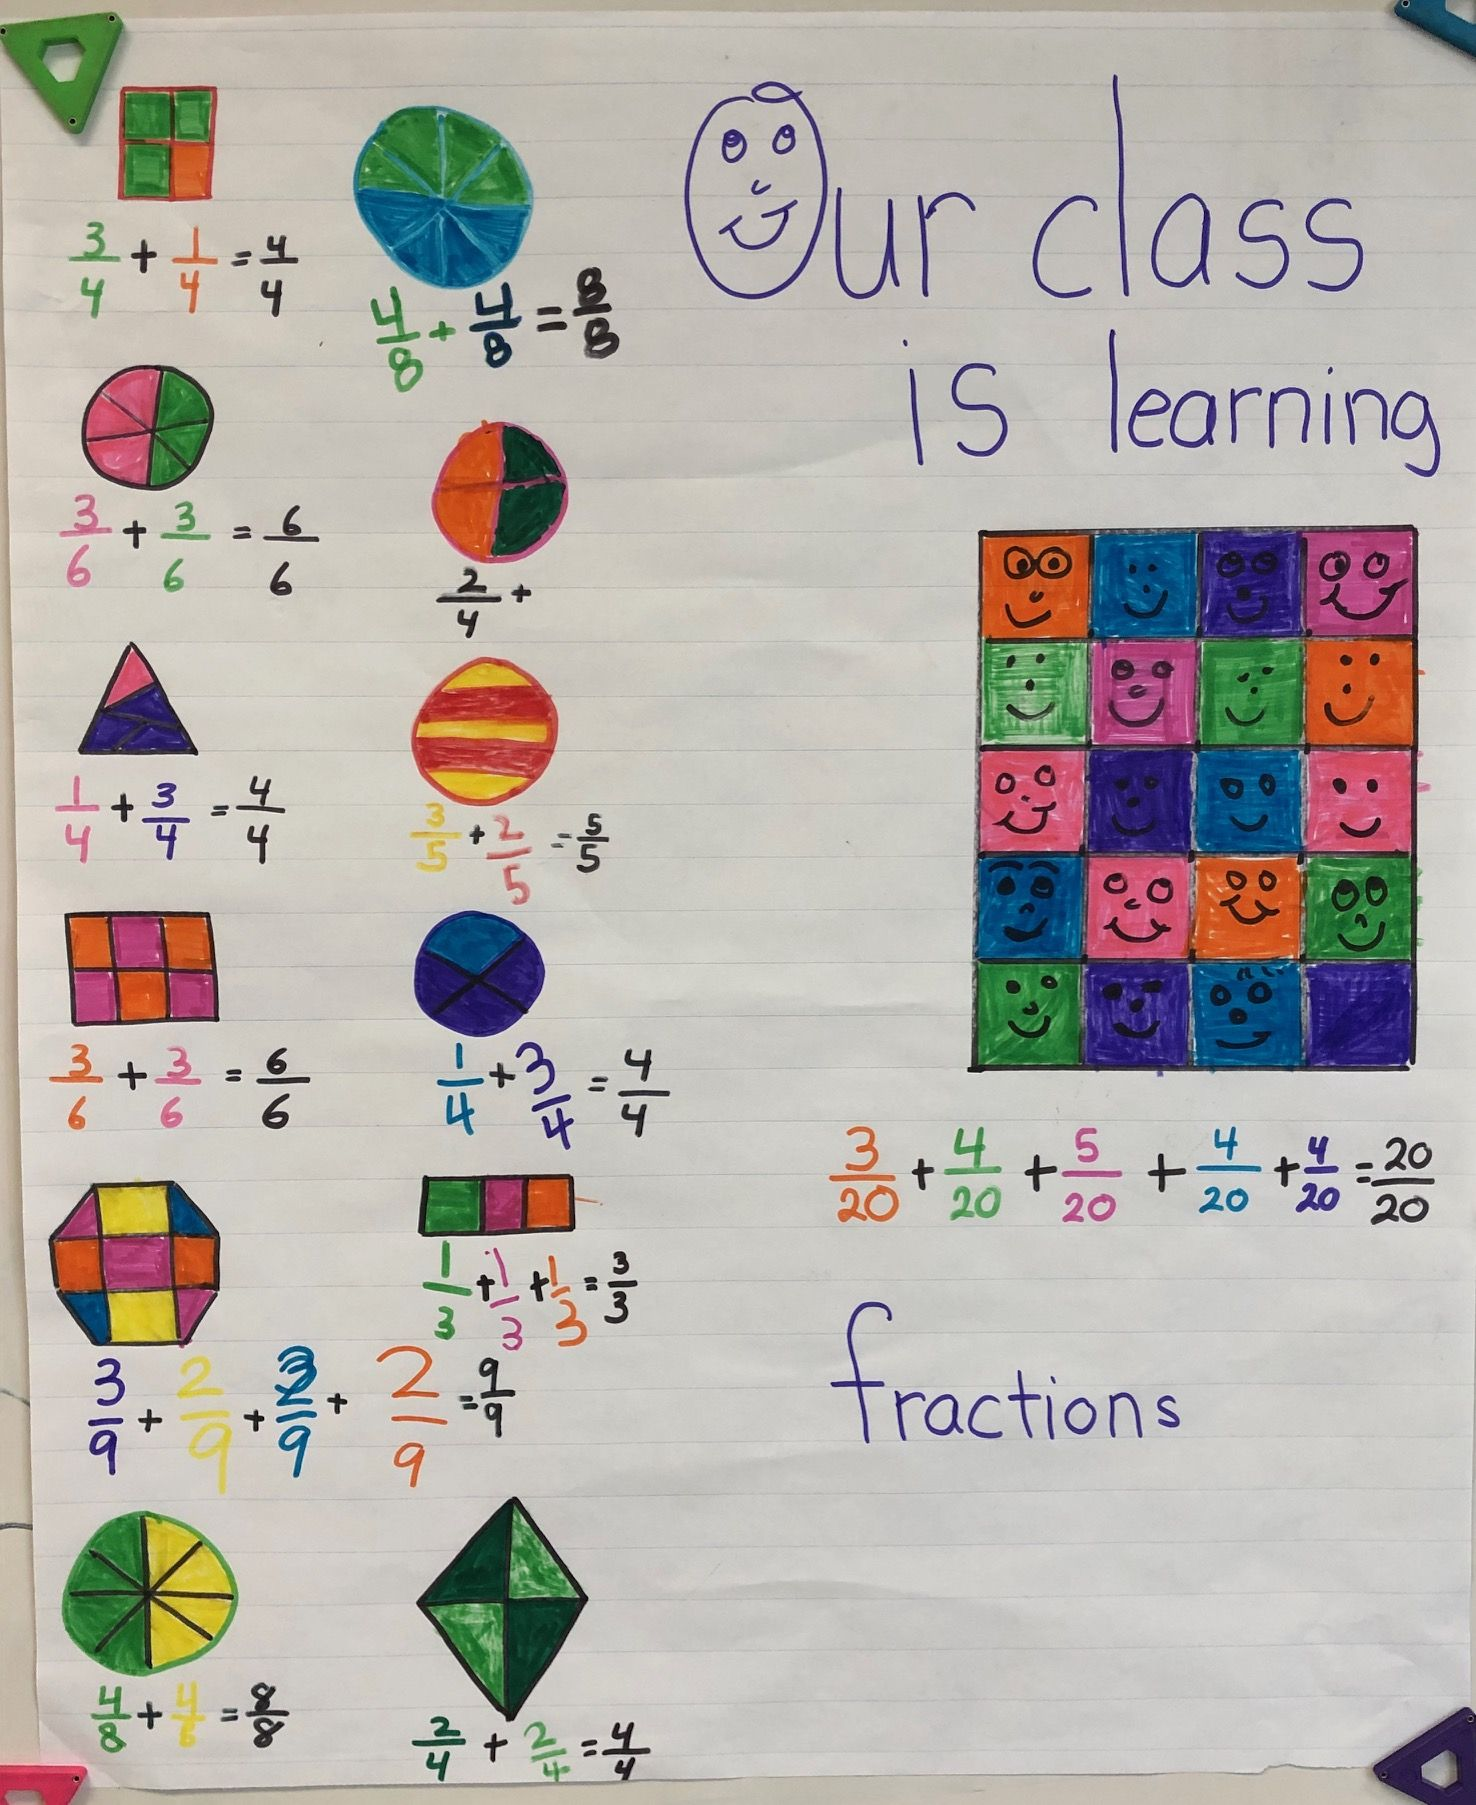 Although The Parts Of Each Fraction Are Not Yet Equal In